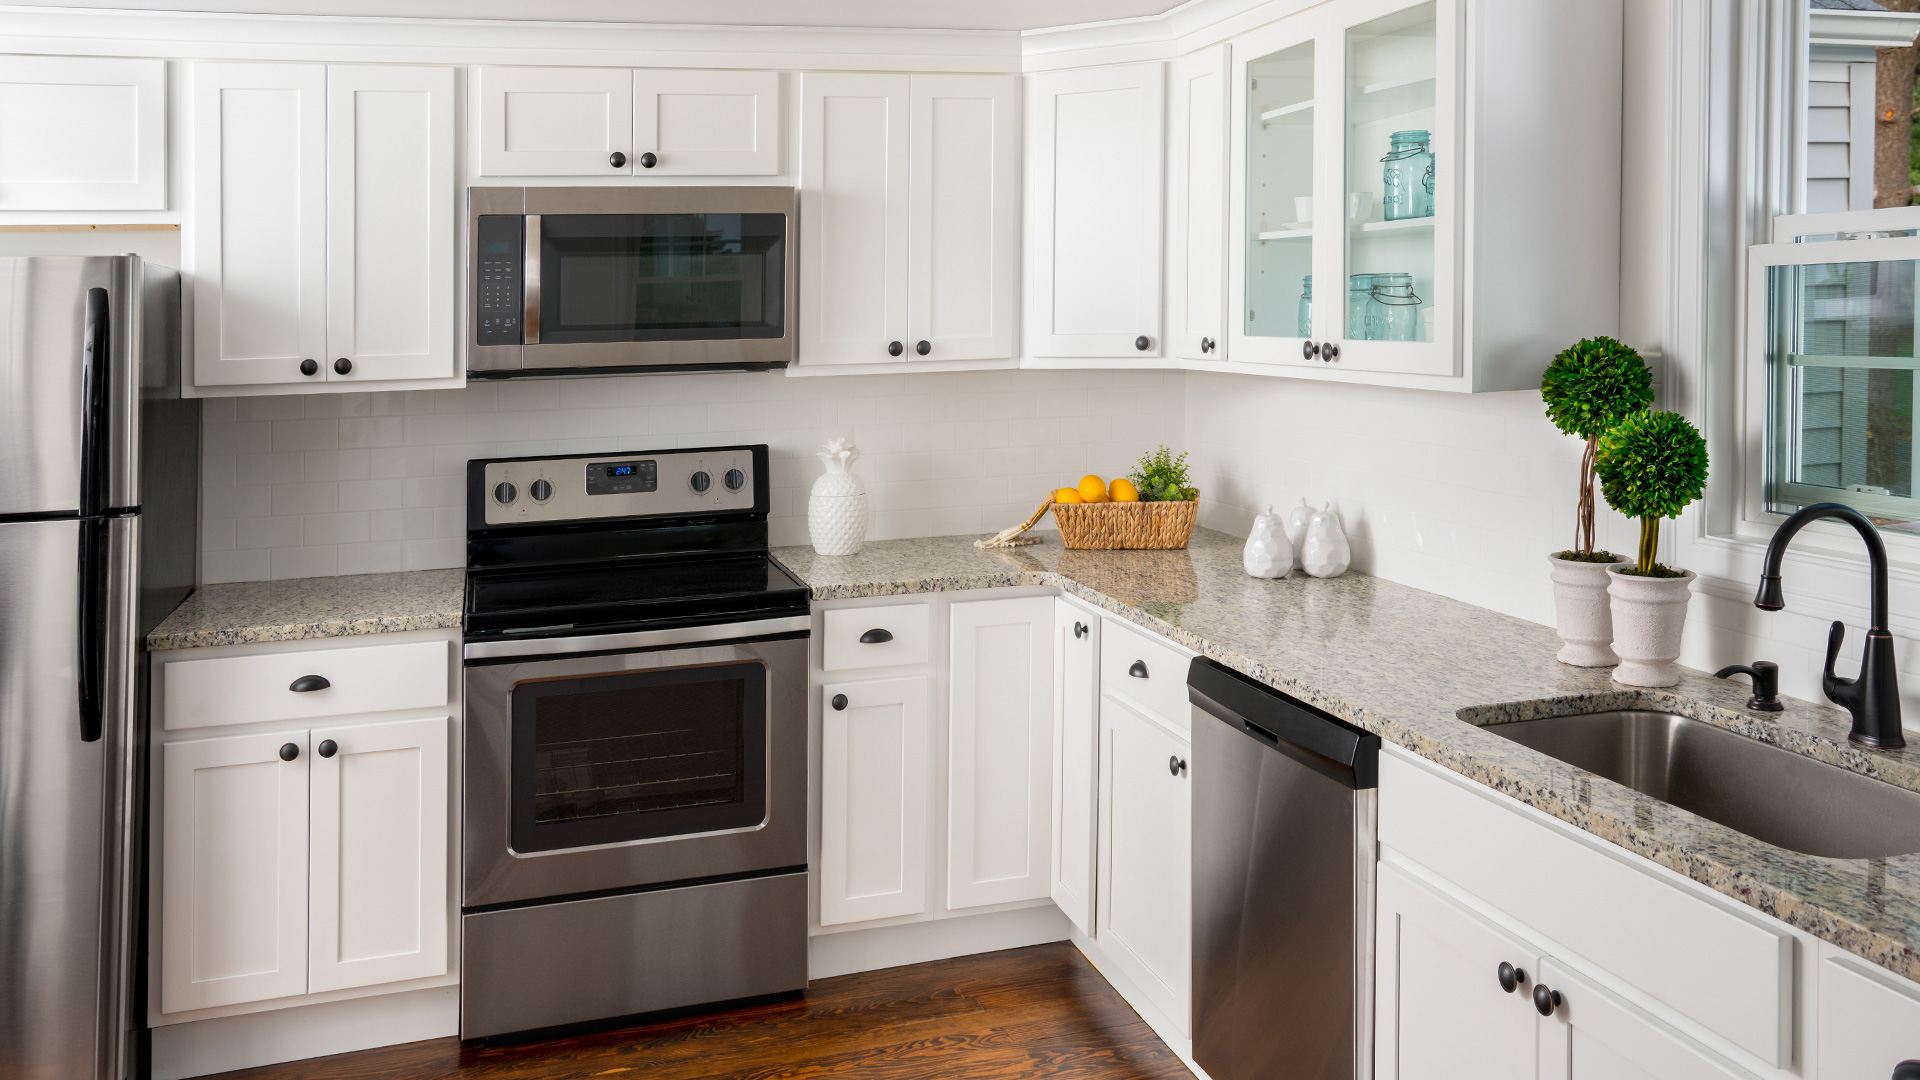 For an affordable white kitchen with popular shaker style cabinets.